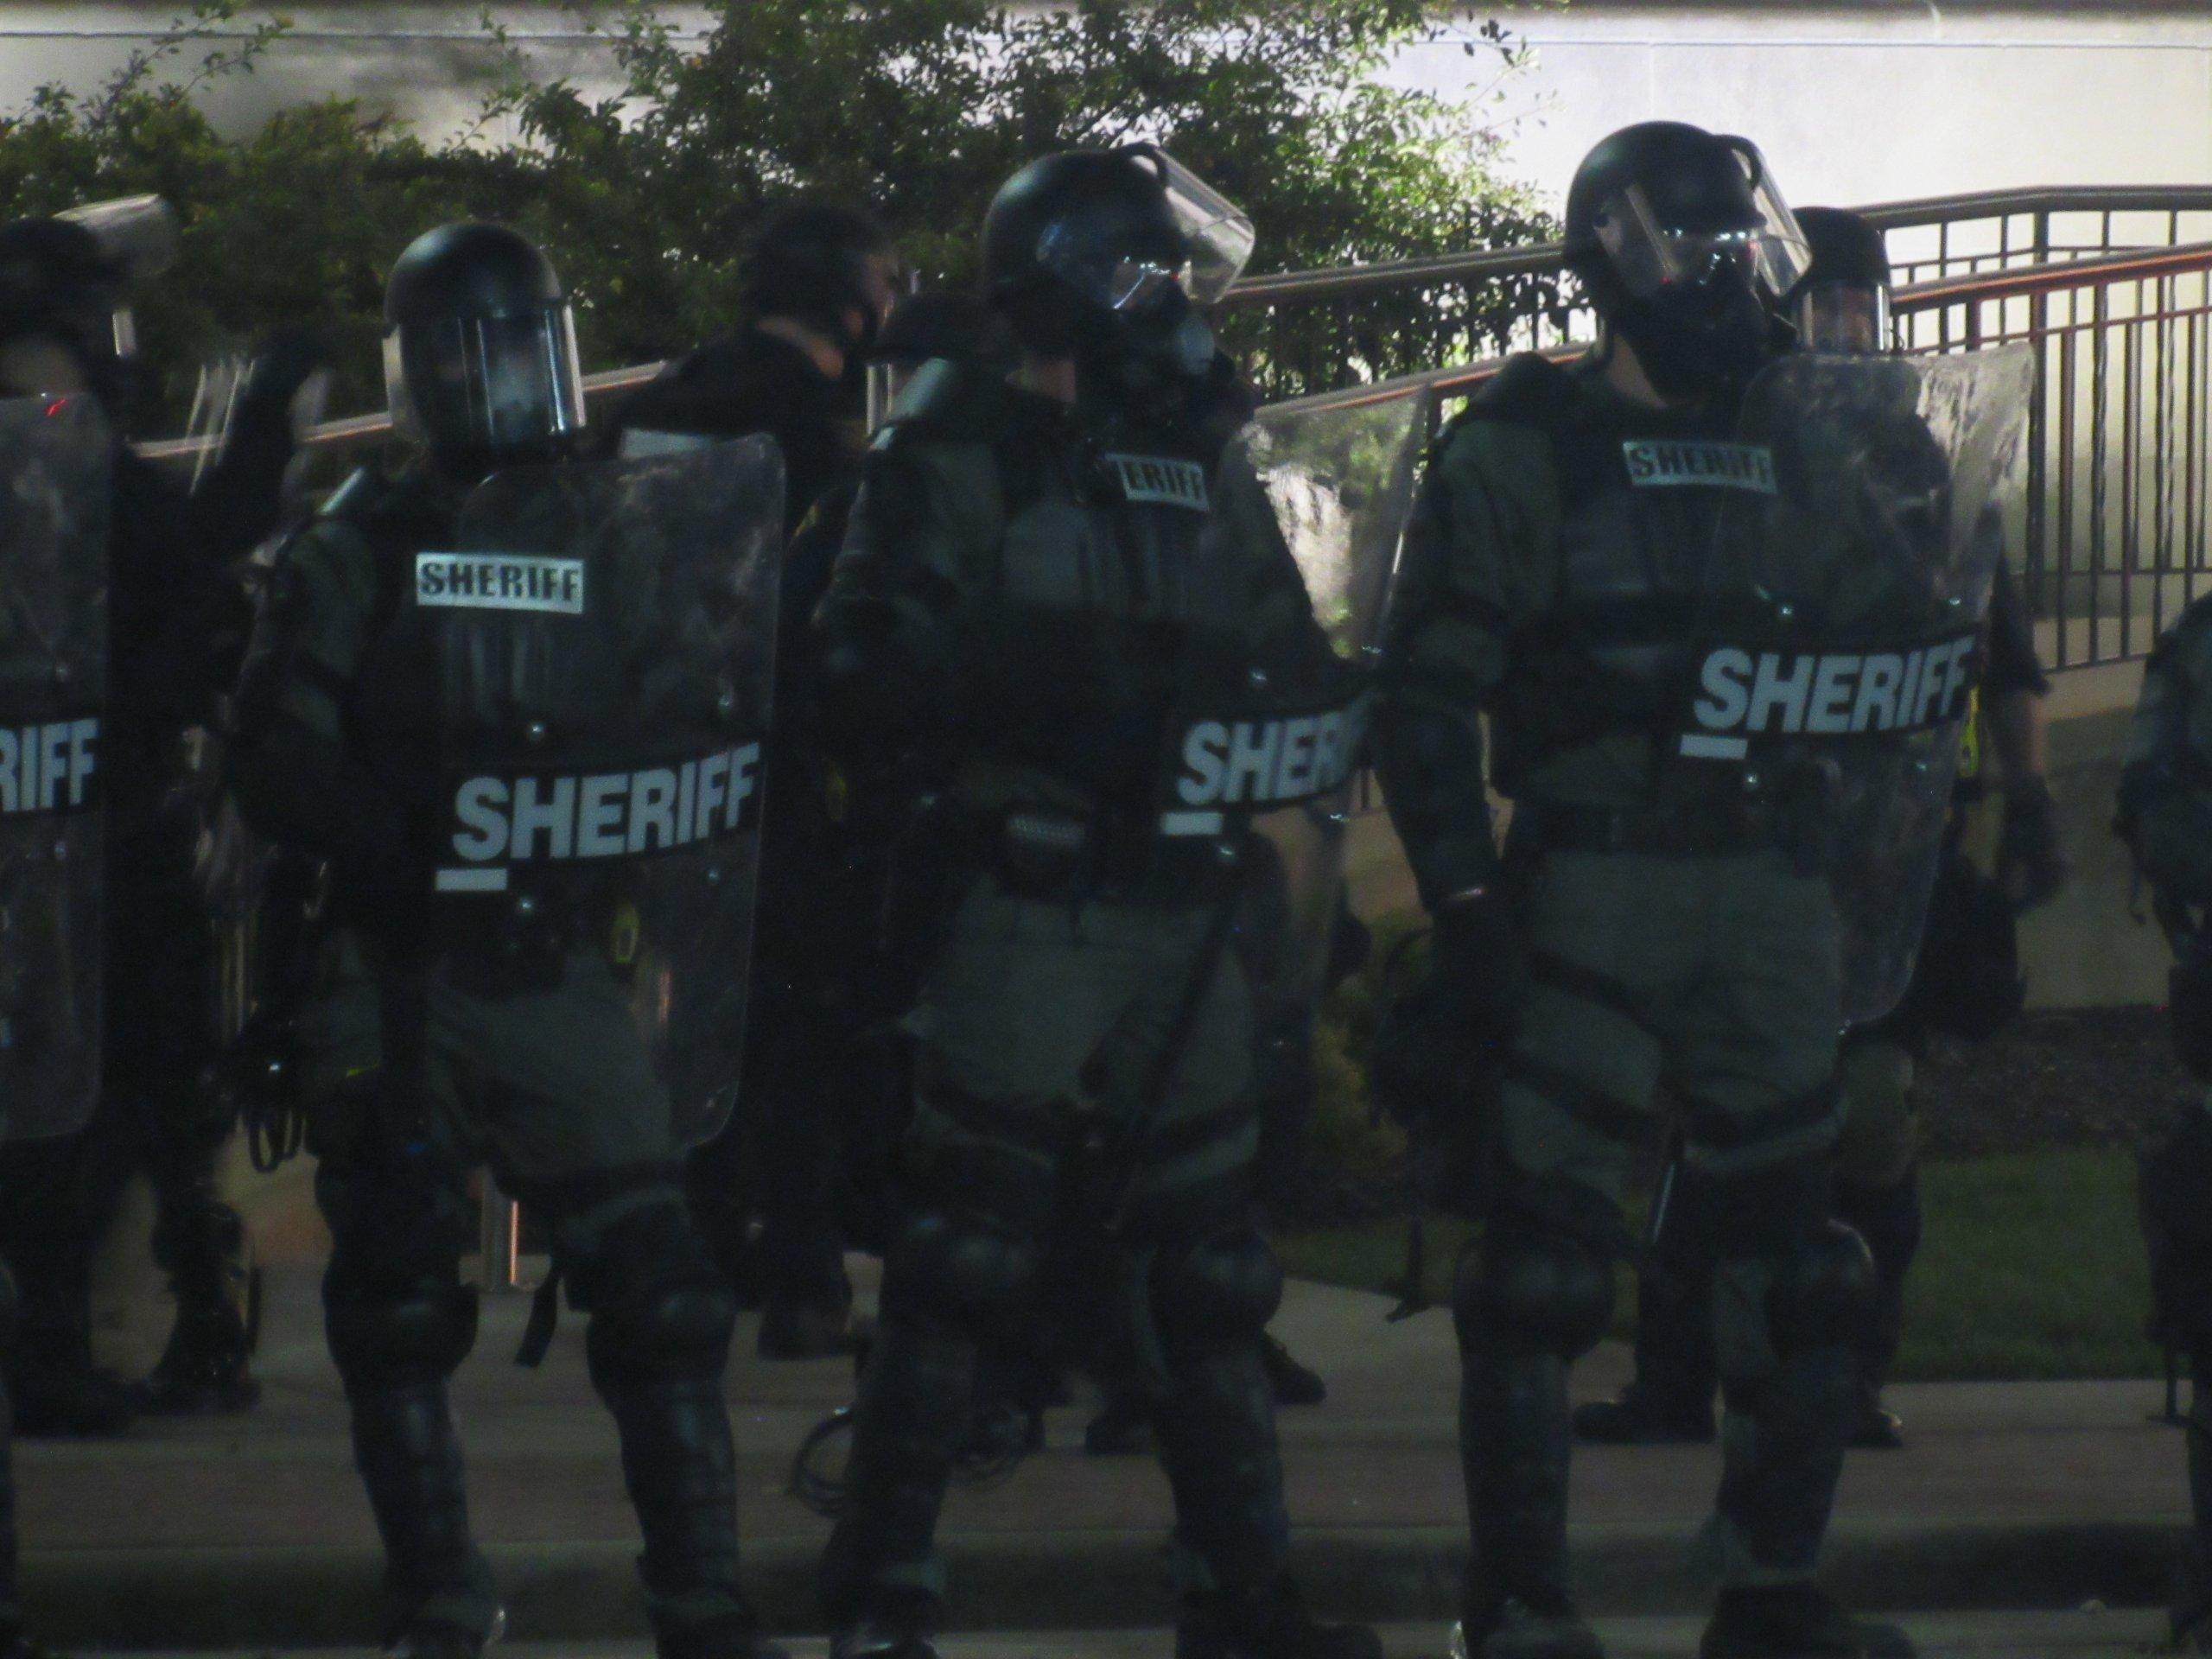 Kenosha County Sheriff's clad in riot equipment form a line in front of city hall. (Photo by Isiah Holmes)